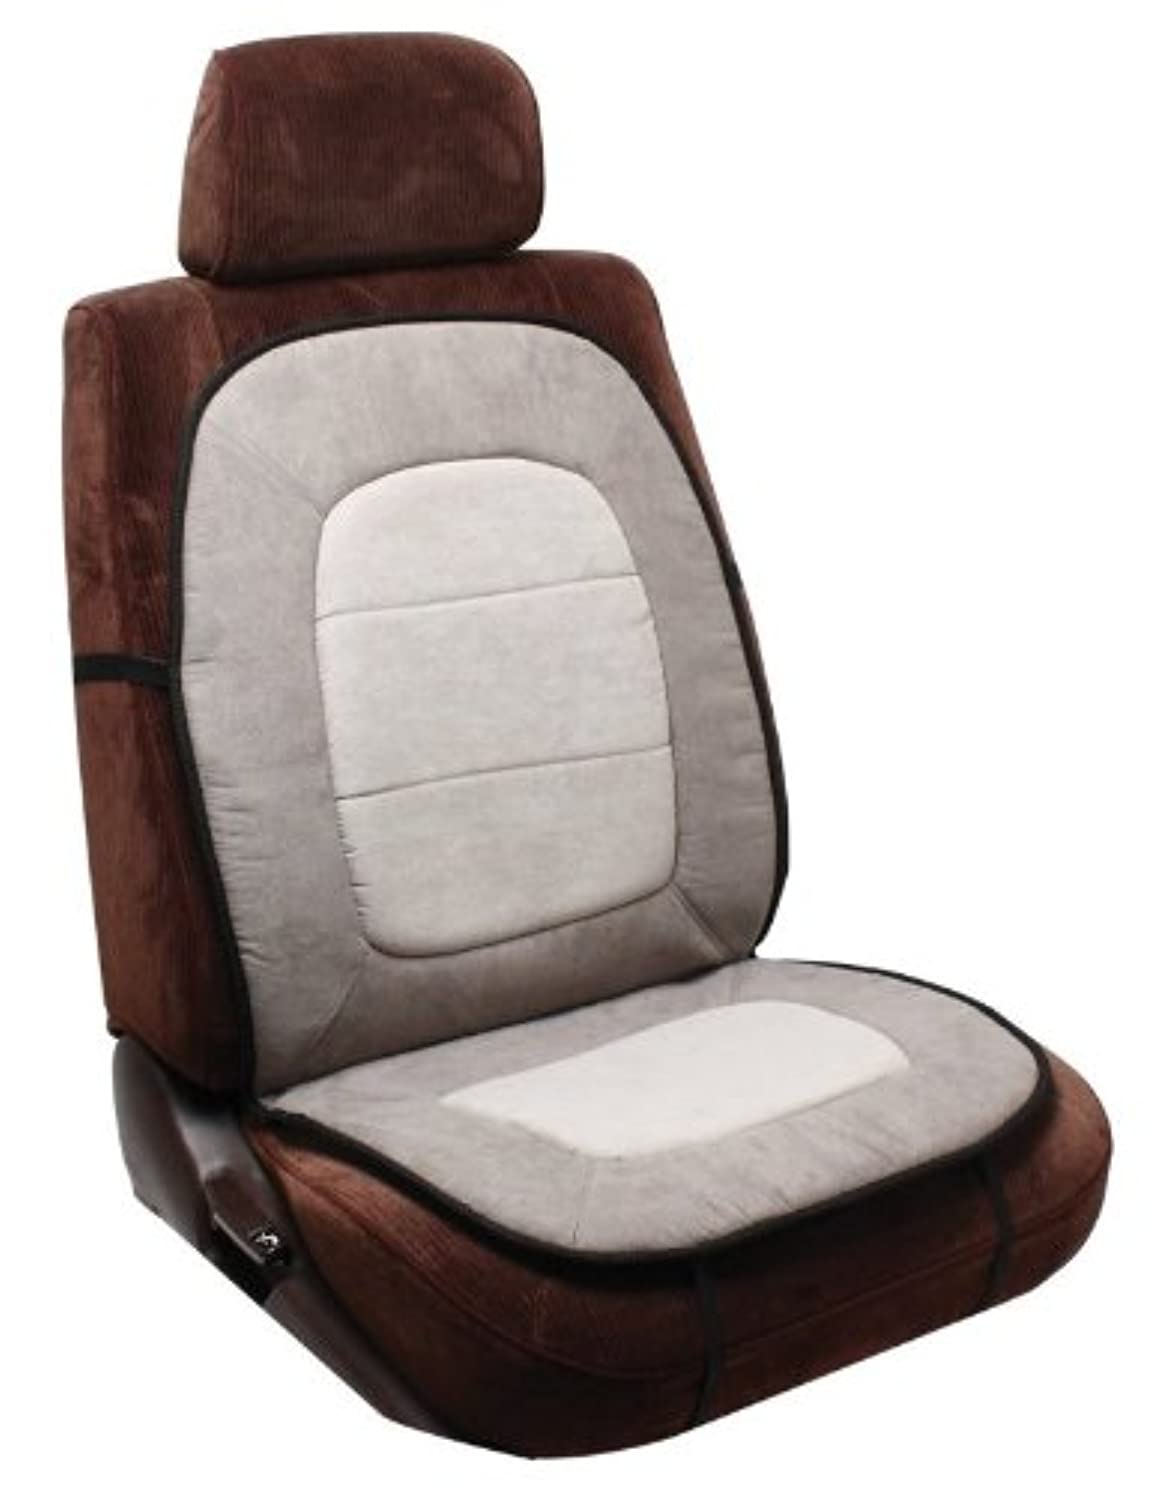 Pilot SC-276G Gray Soft Seat Cushion